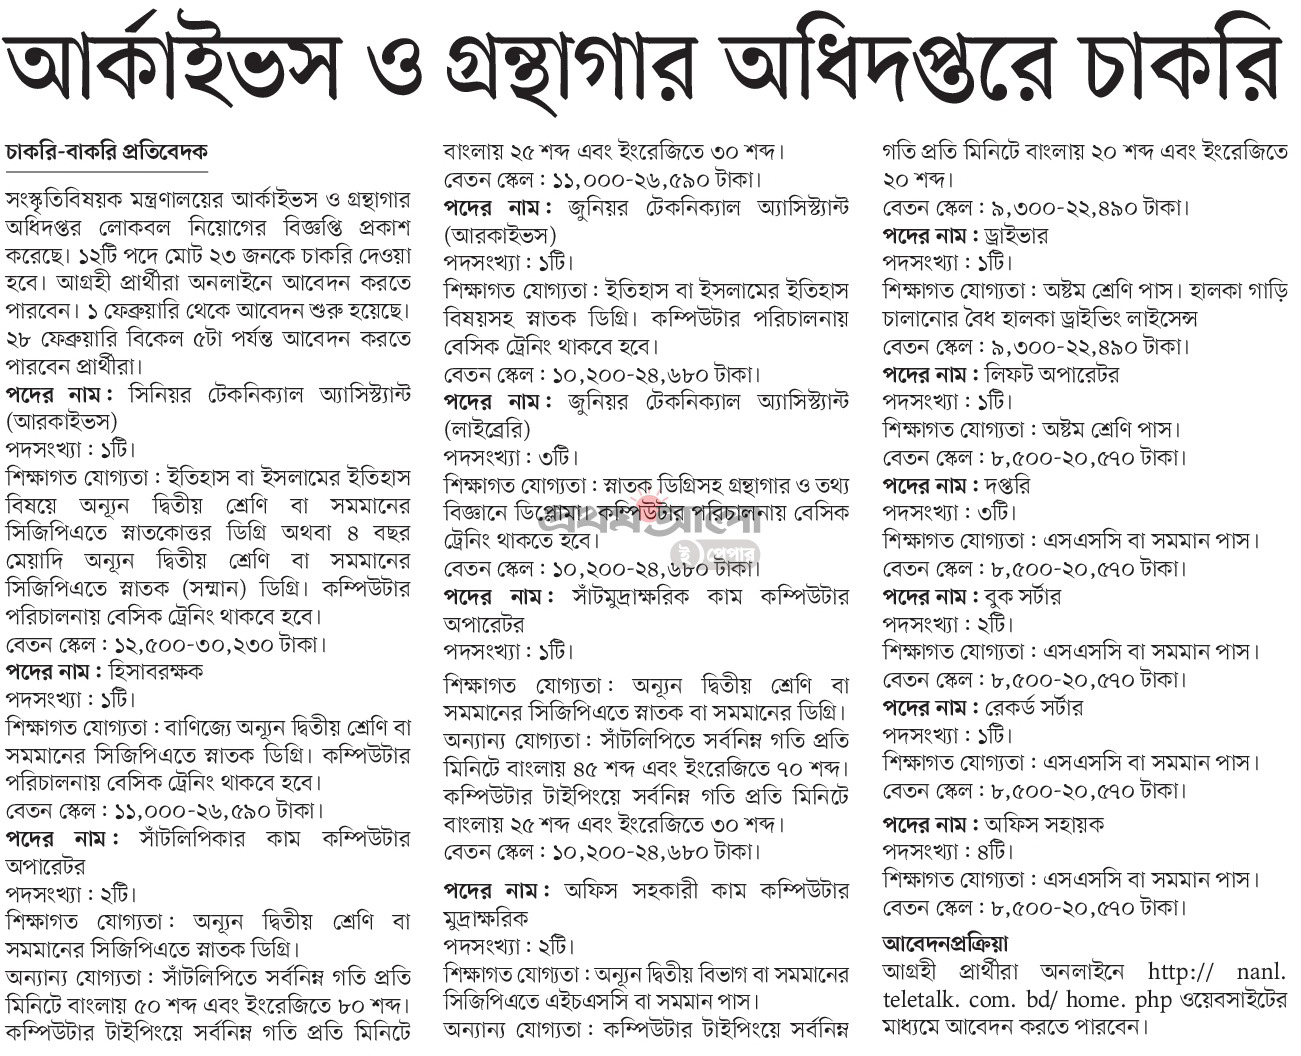 Department of Archives and Library Job Circular 2021